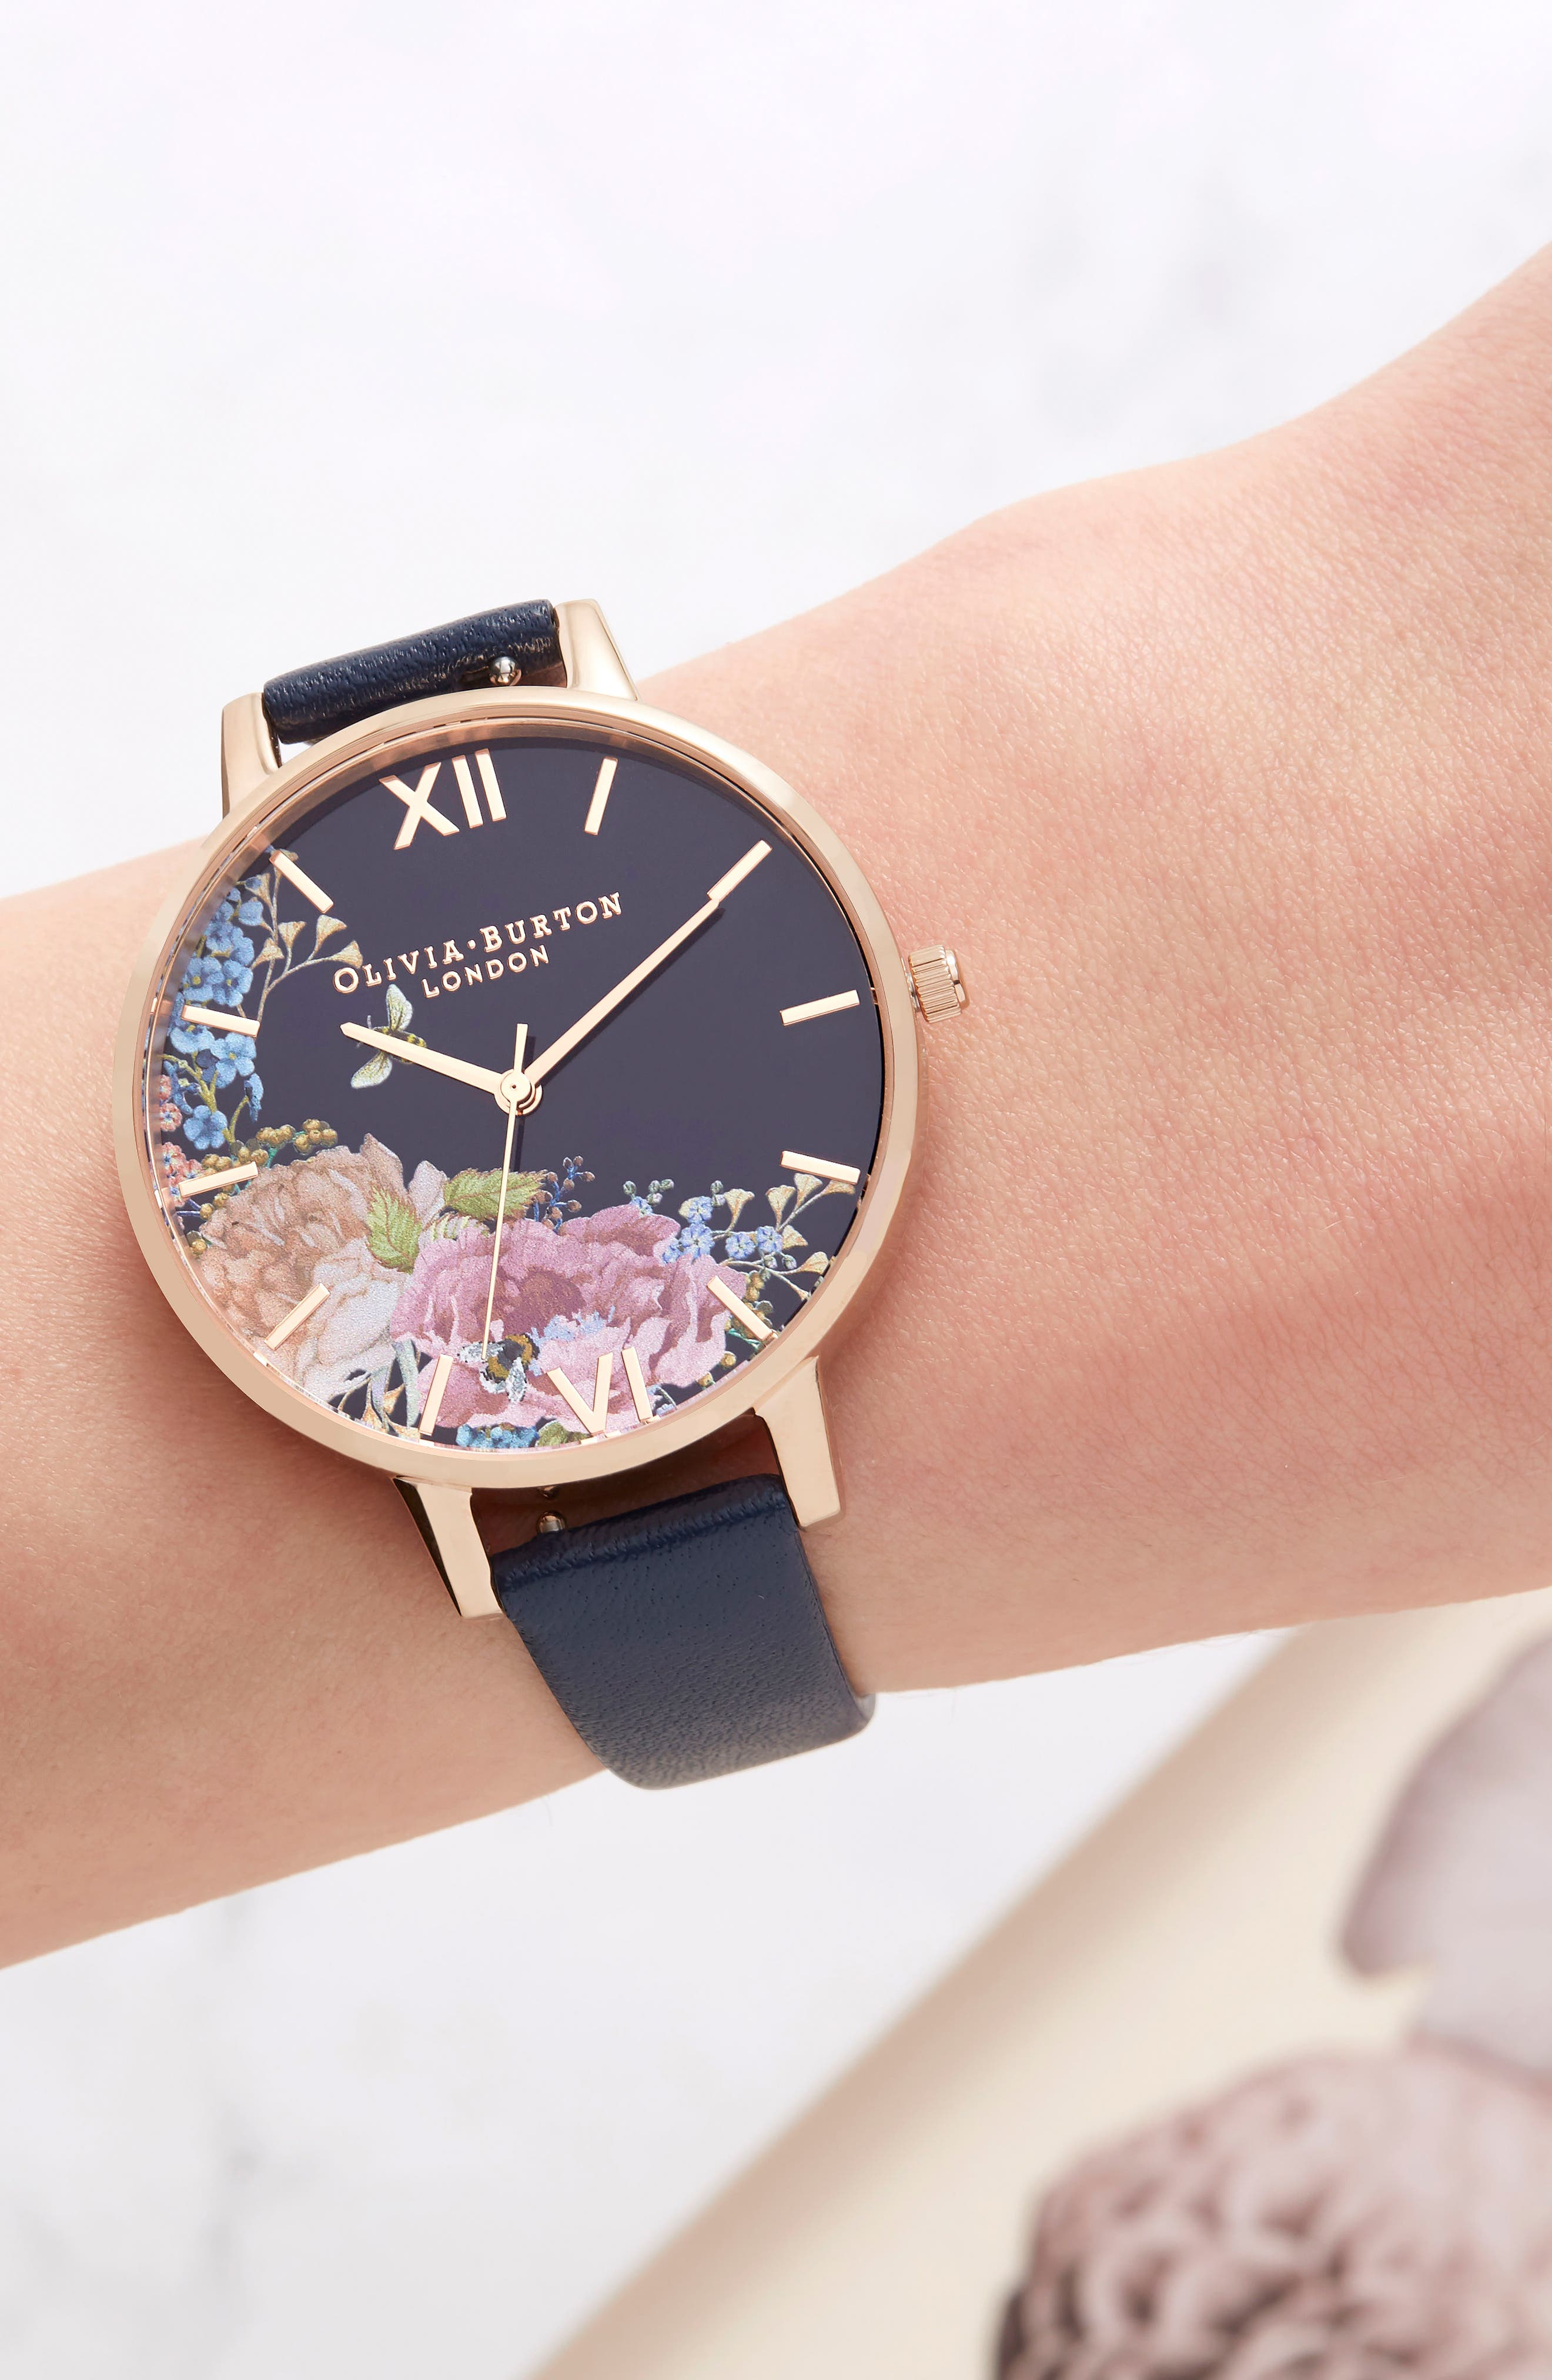 Enchanted Garden Leather Strap Watch, 38mm,                             Alternate thumbnail 6, color,                             NAVY/ FLORAL/ ROSE GOLD